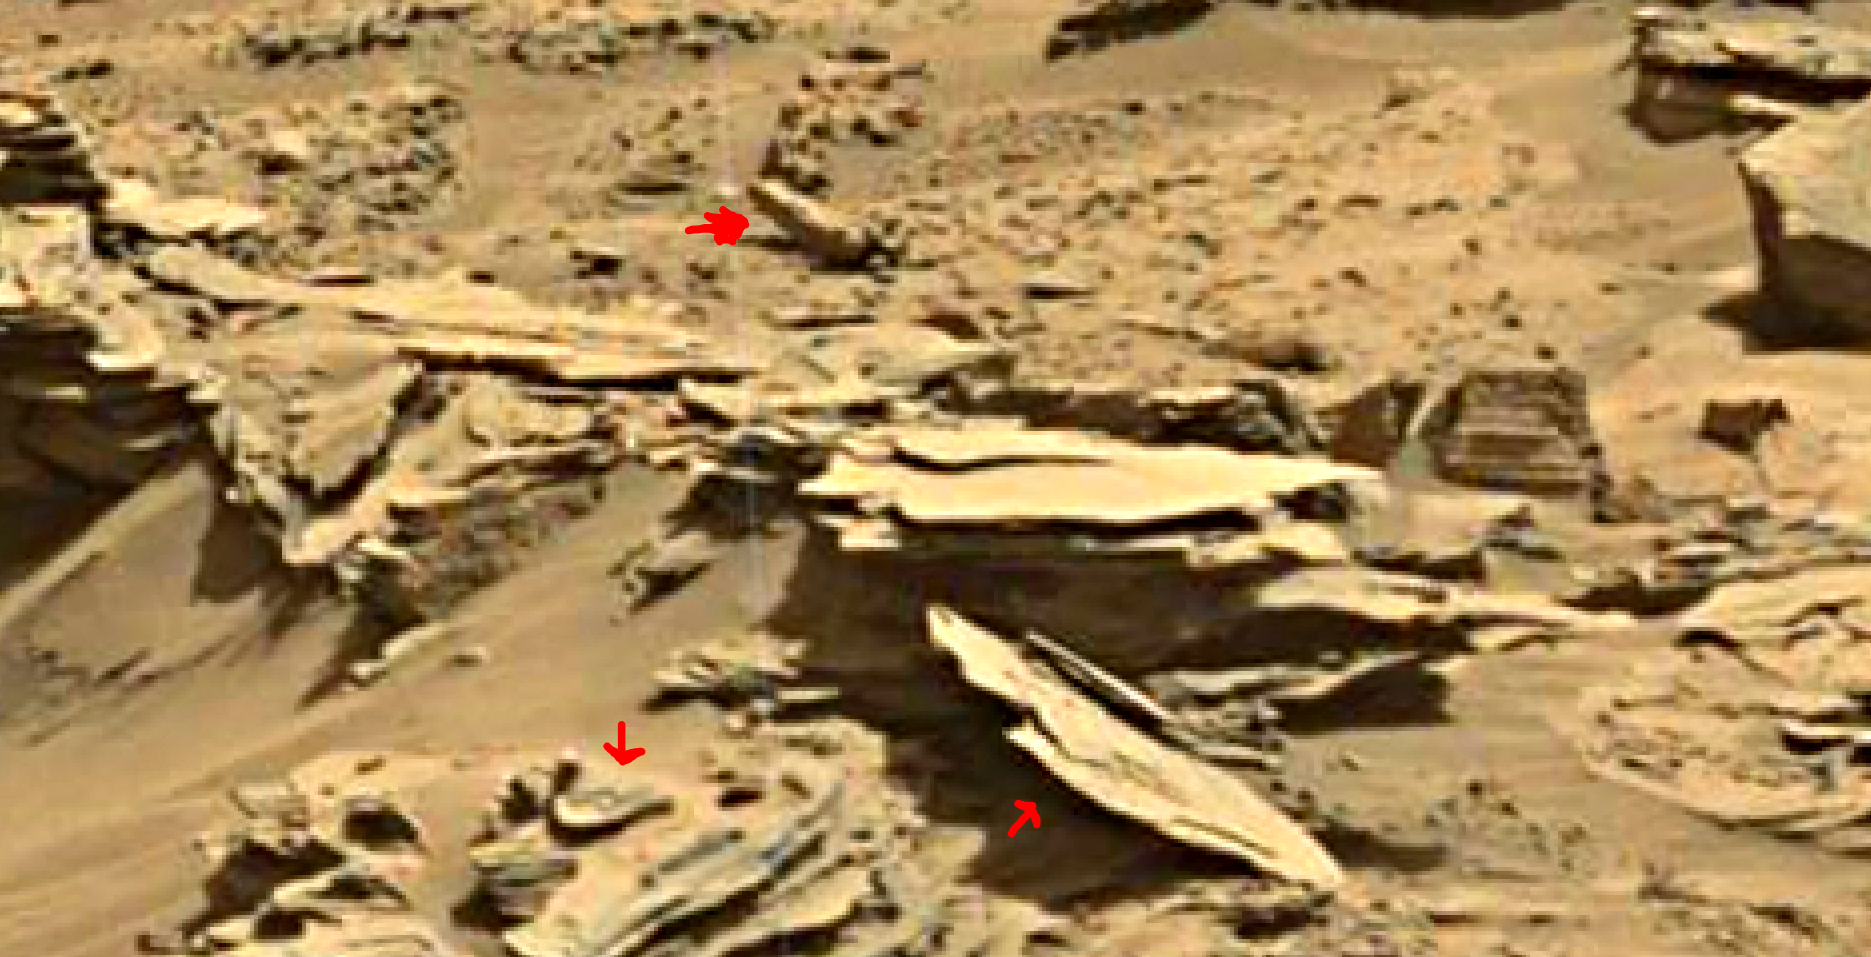 mars sol 1346 anomaly-artifacts 21a was life on mars